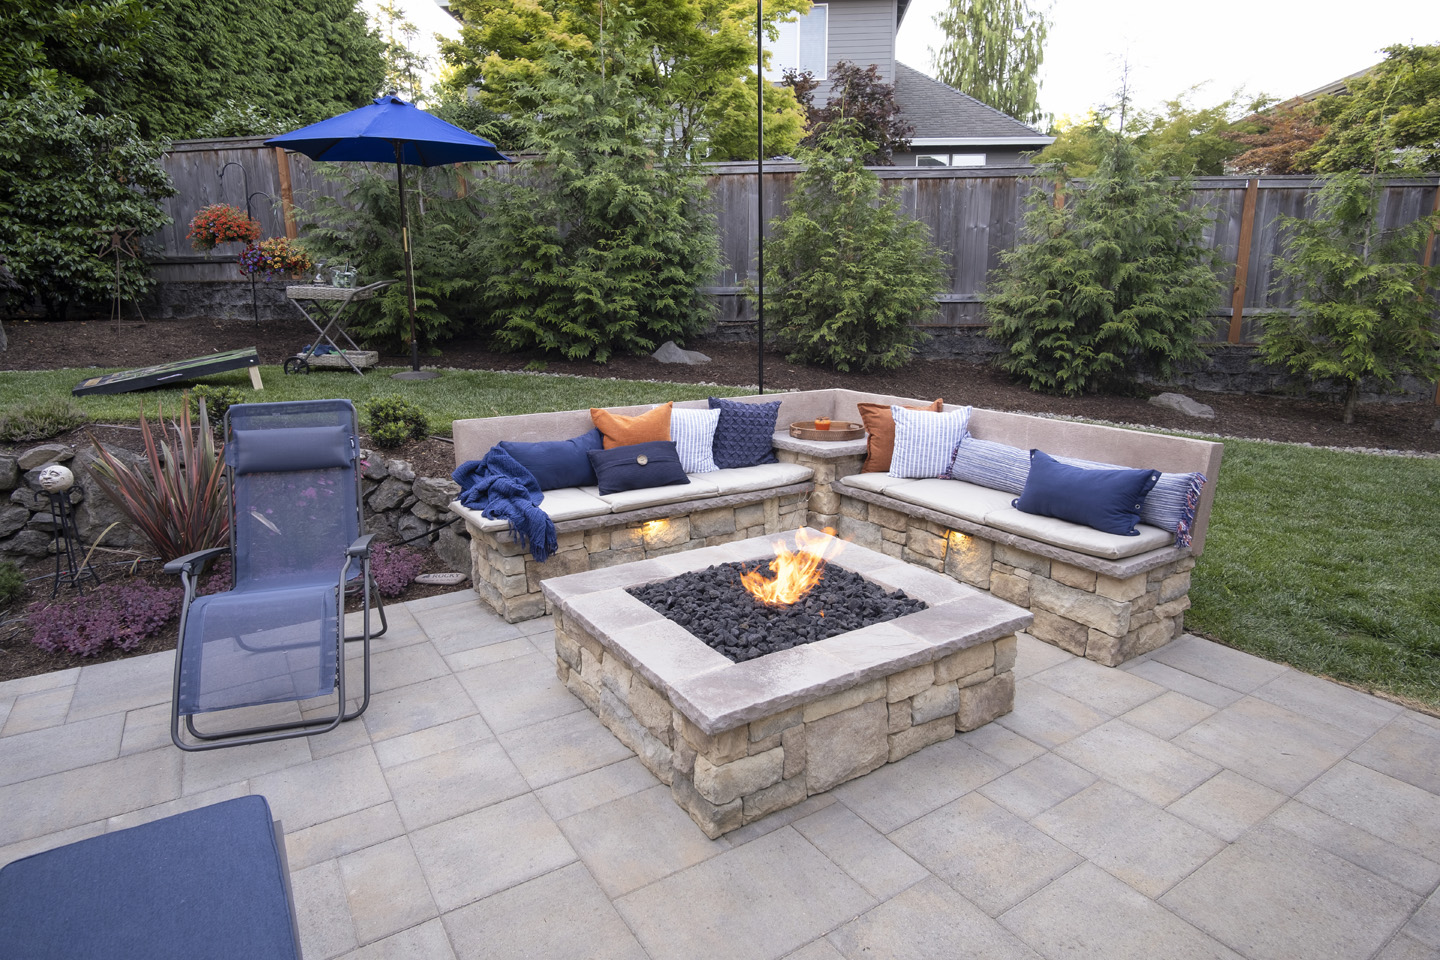 Sloped Backyard with Firepit Seatwall with Seatbacks